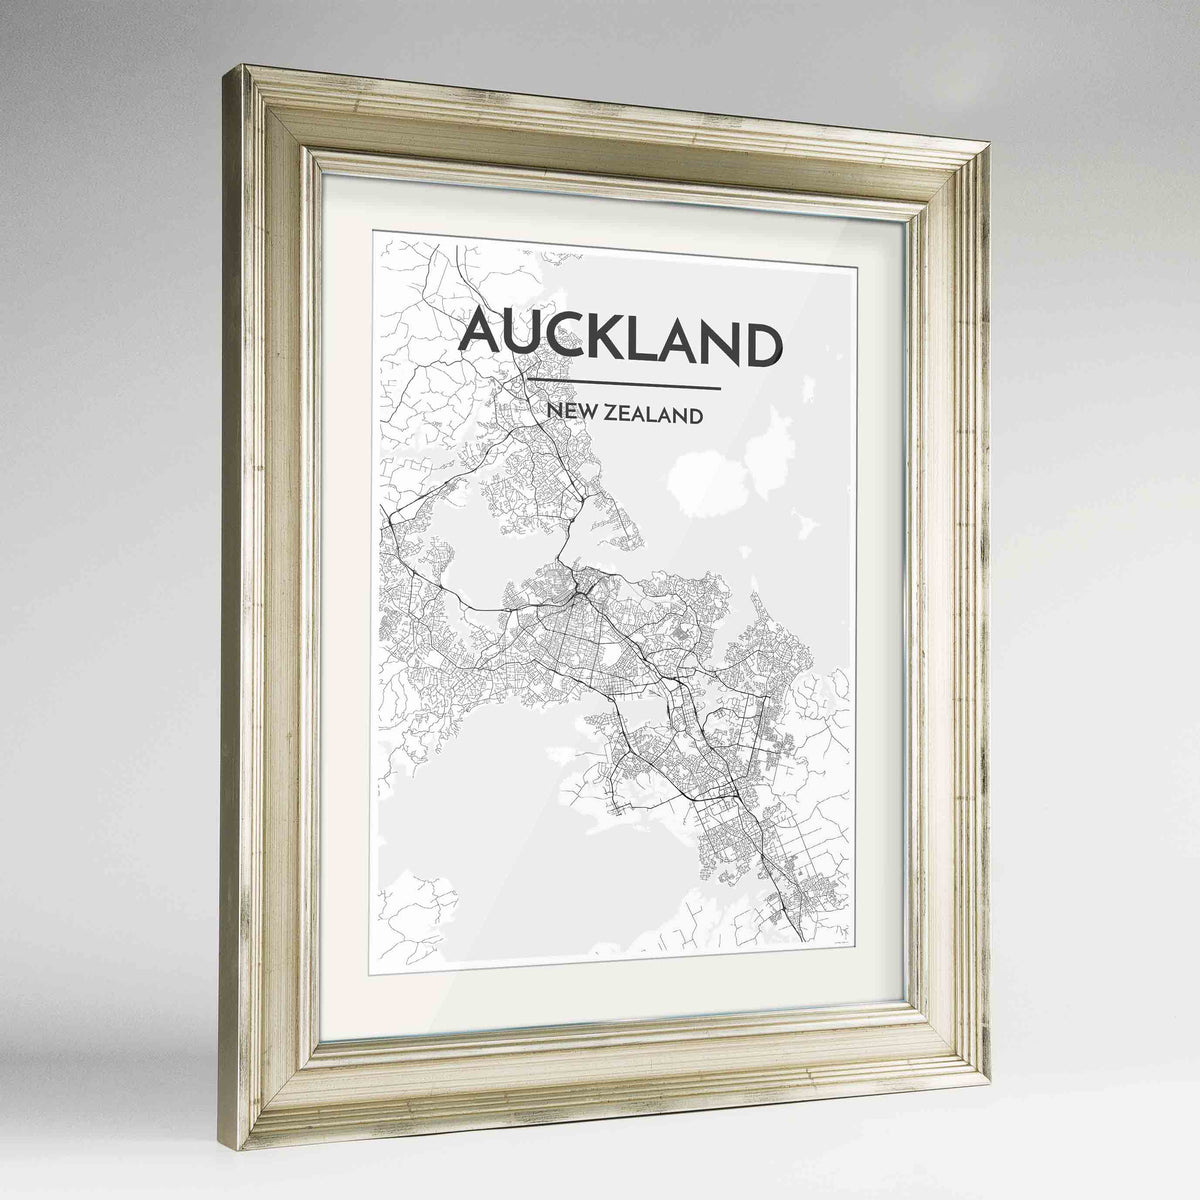 "Framed Auckland Map Art Print 24x36"" Champagne frame Point Two Design Group"